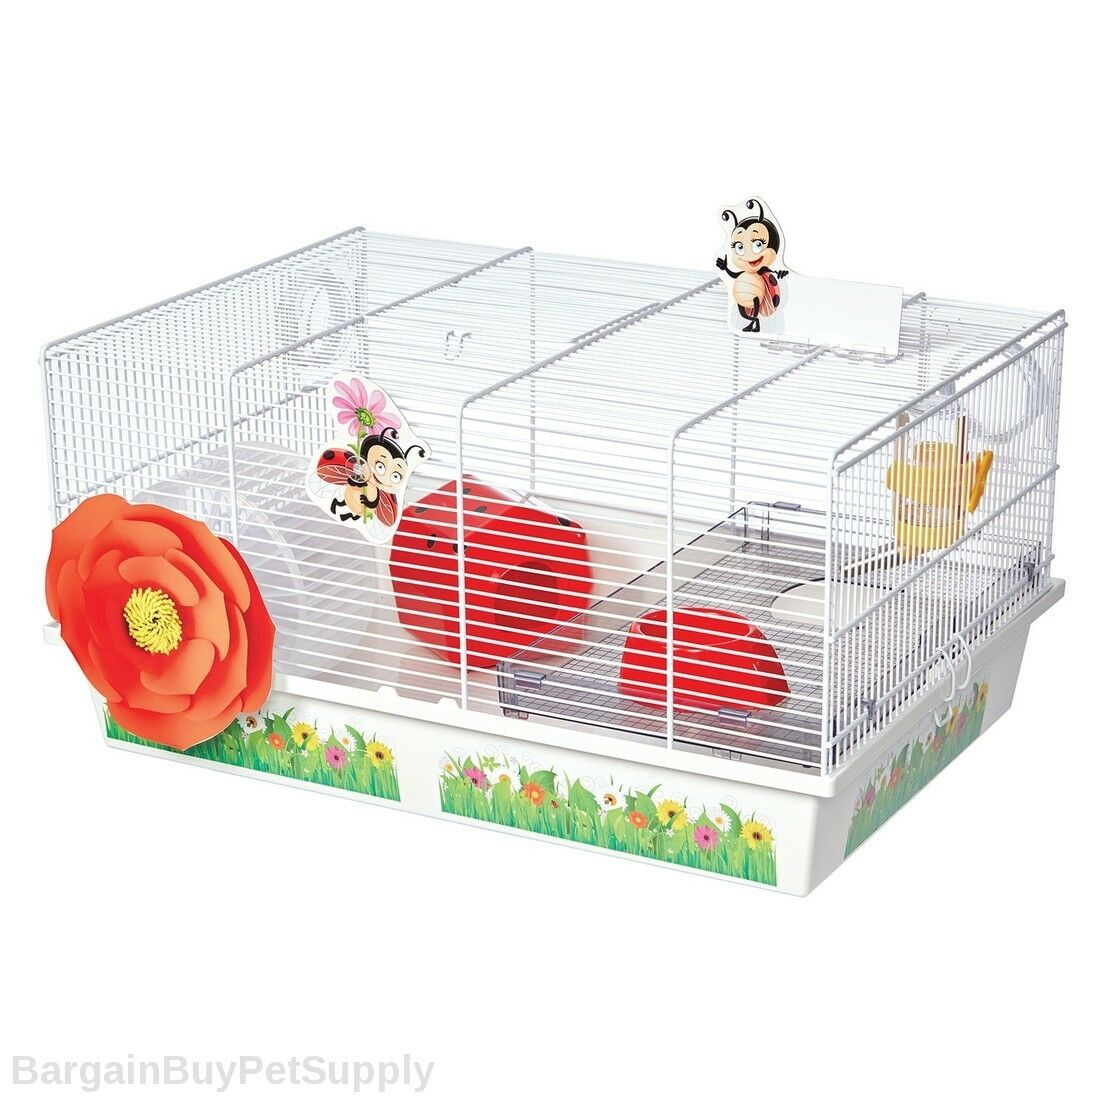 Midwest Critterville Ladybug Hamster Cage Home White Red